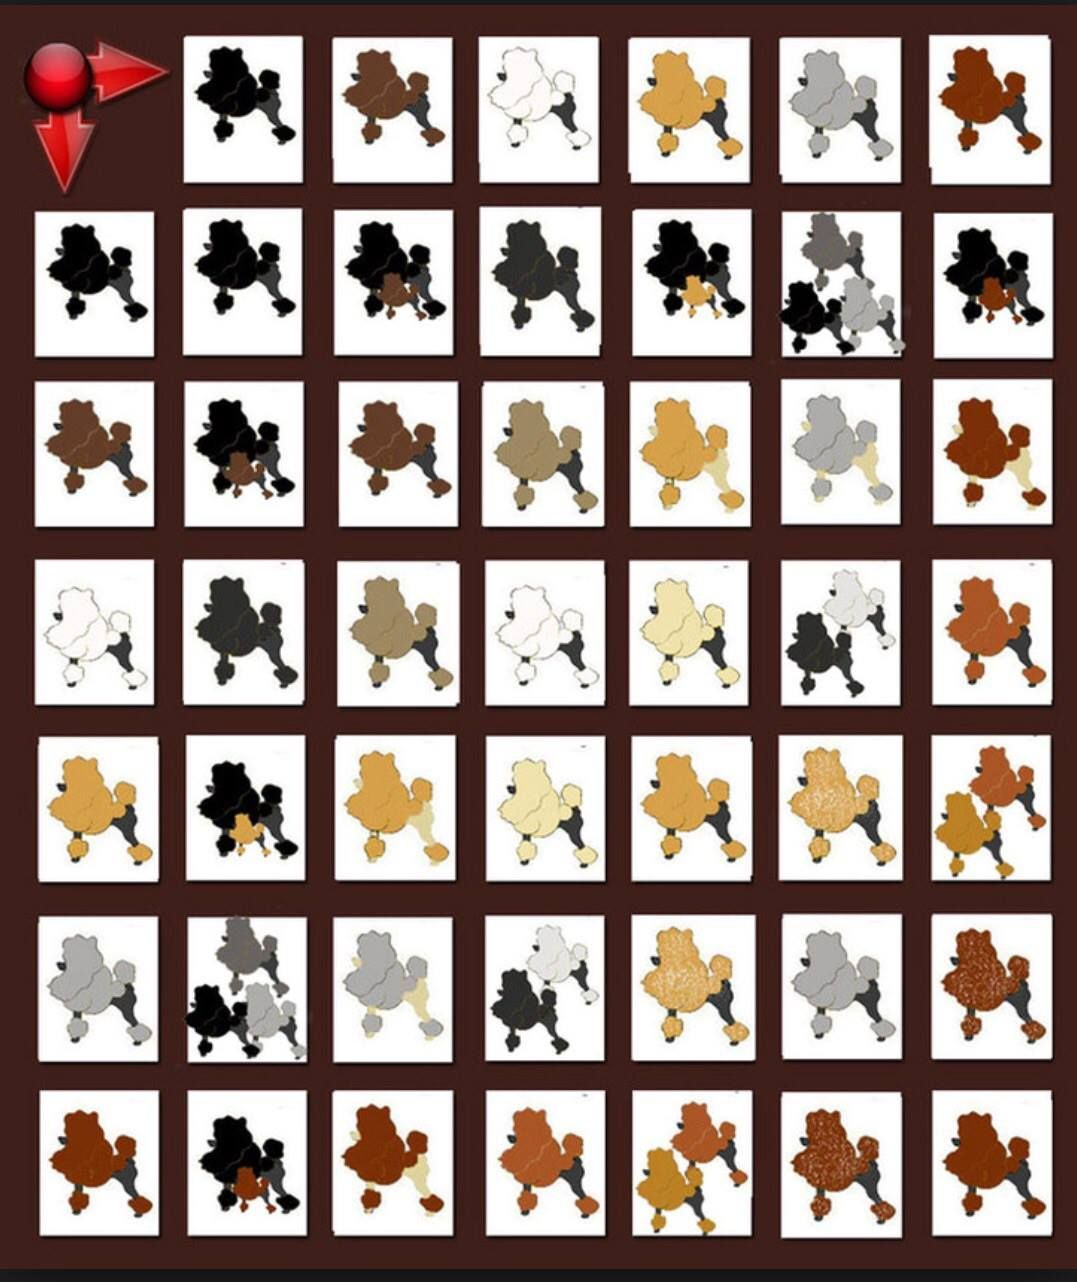 Poodle Breeding Color Chart Everything Dog Grooming Pinterest